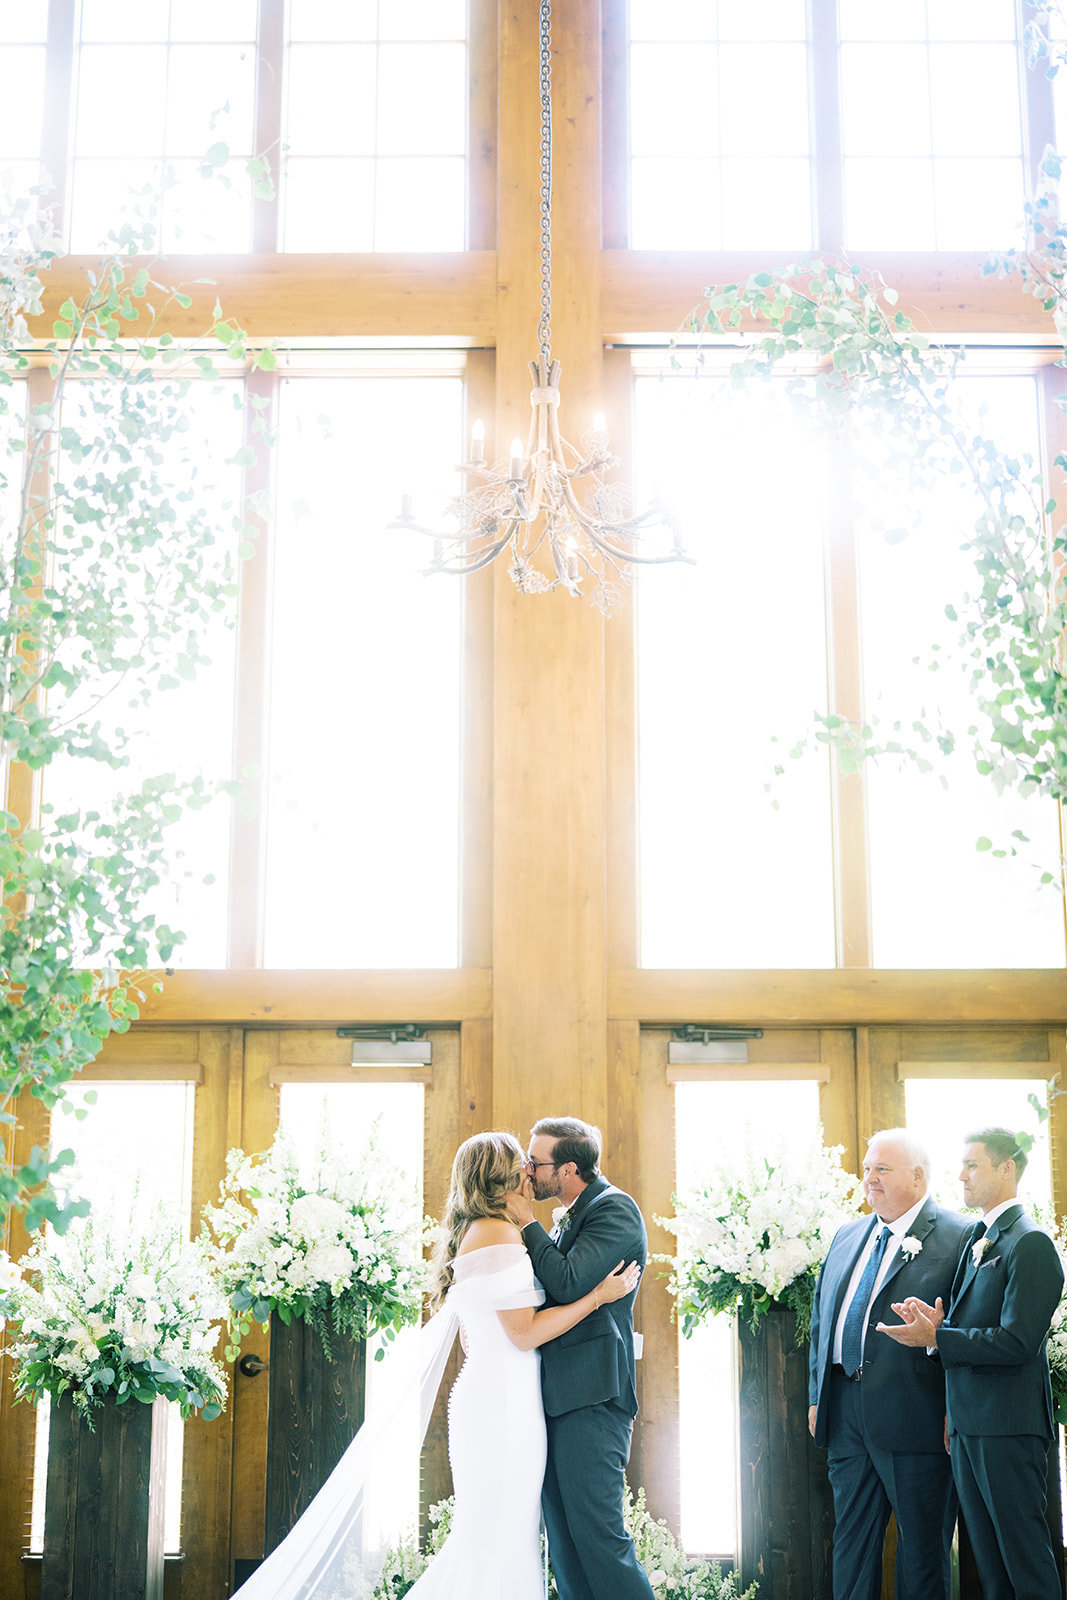 ShelbyRyan-Ceremony-GoBellabyEmilyCampbell-ColoradoEventPlanner9